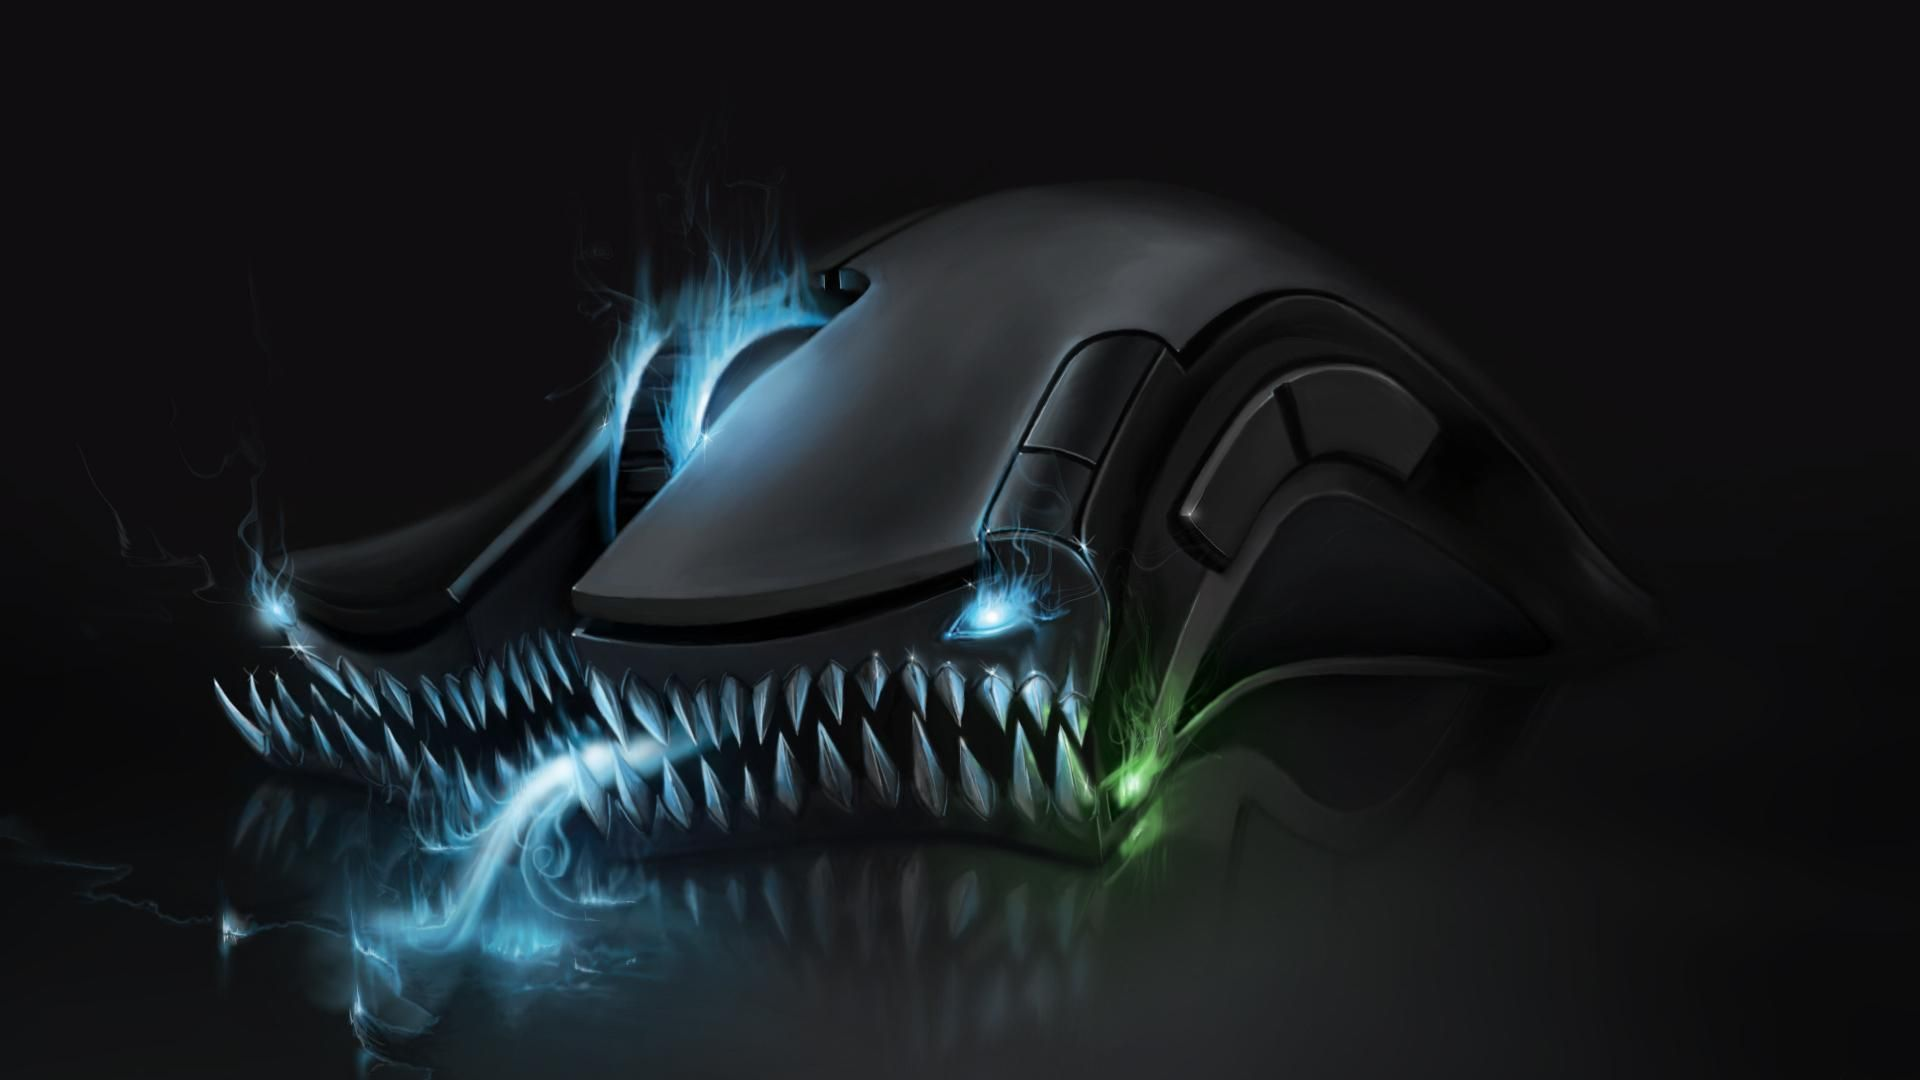 Attack Mouse Gaming Desktop Backgrounds Gaming Wallpapers Hd Gaming Wallpapers